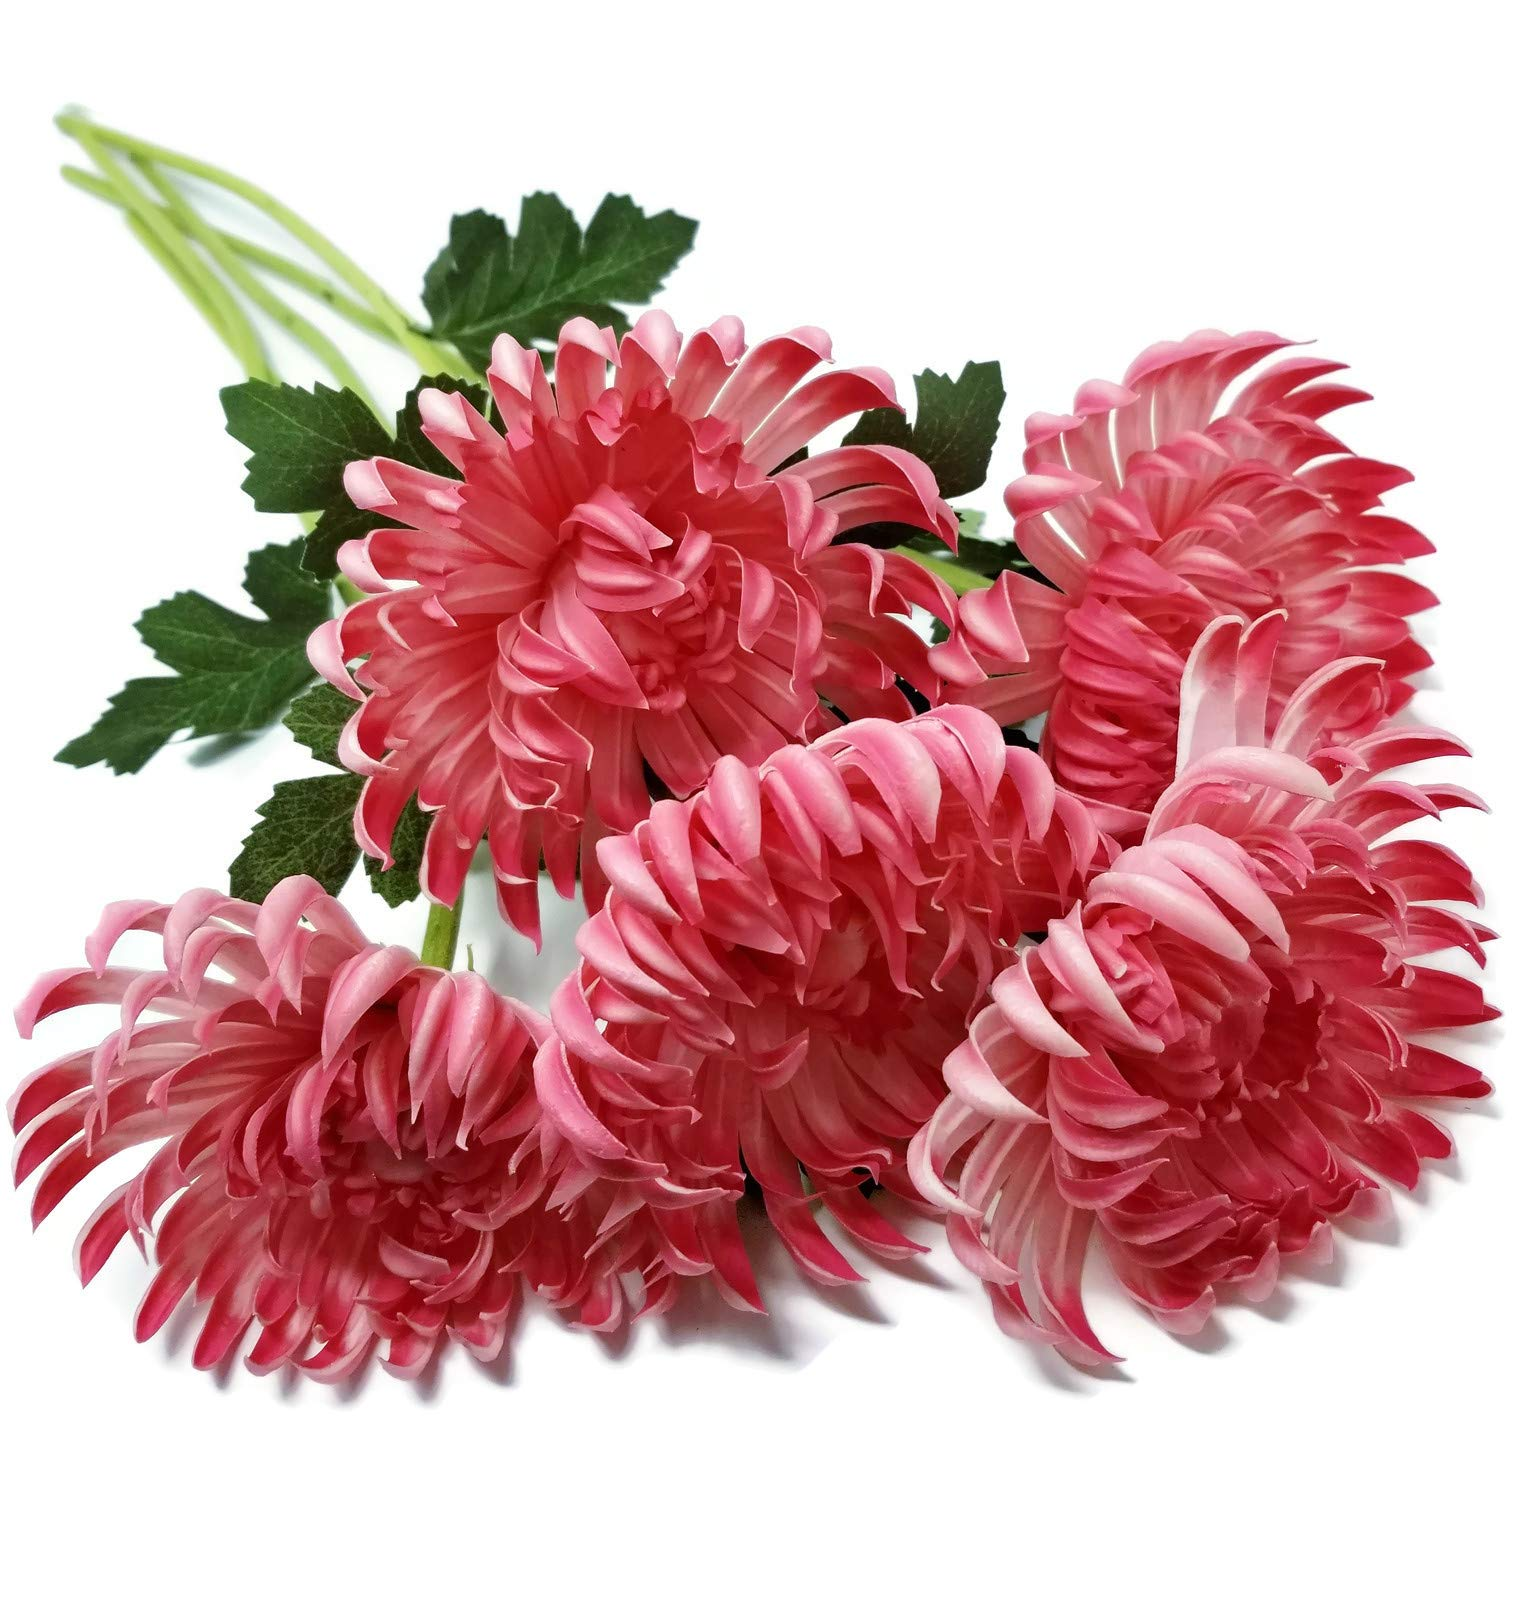 "Floral Kingdom Artificial Real Touch 24"" Chrysanthemum Flowers Fuji Spider Mum for Home, Office, Weddings, Bouquets (Pack of 5) (Rosy Pink)"